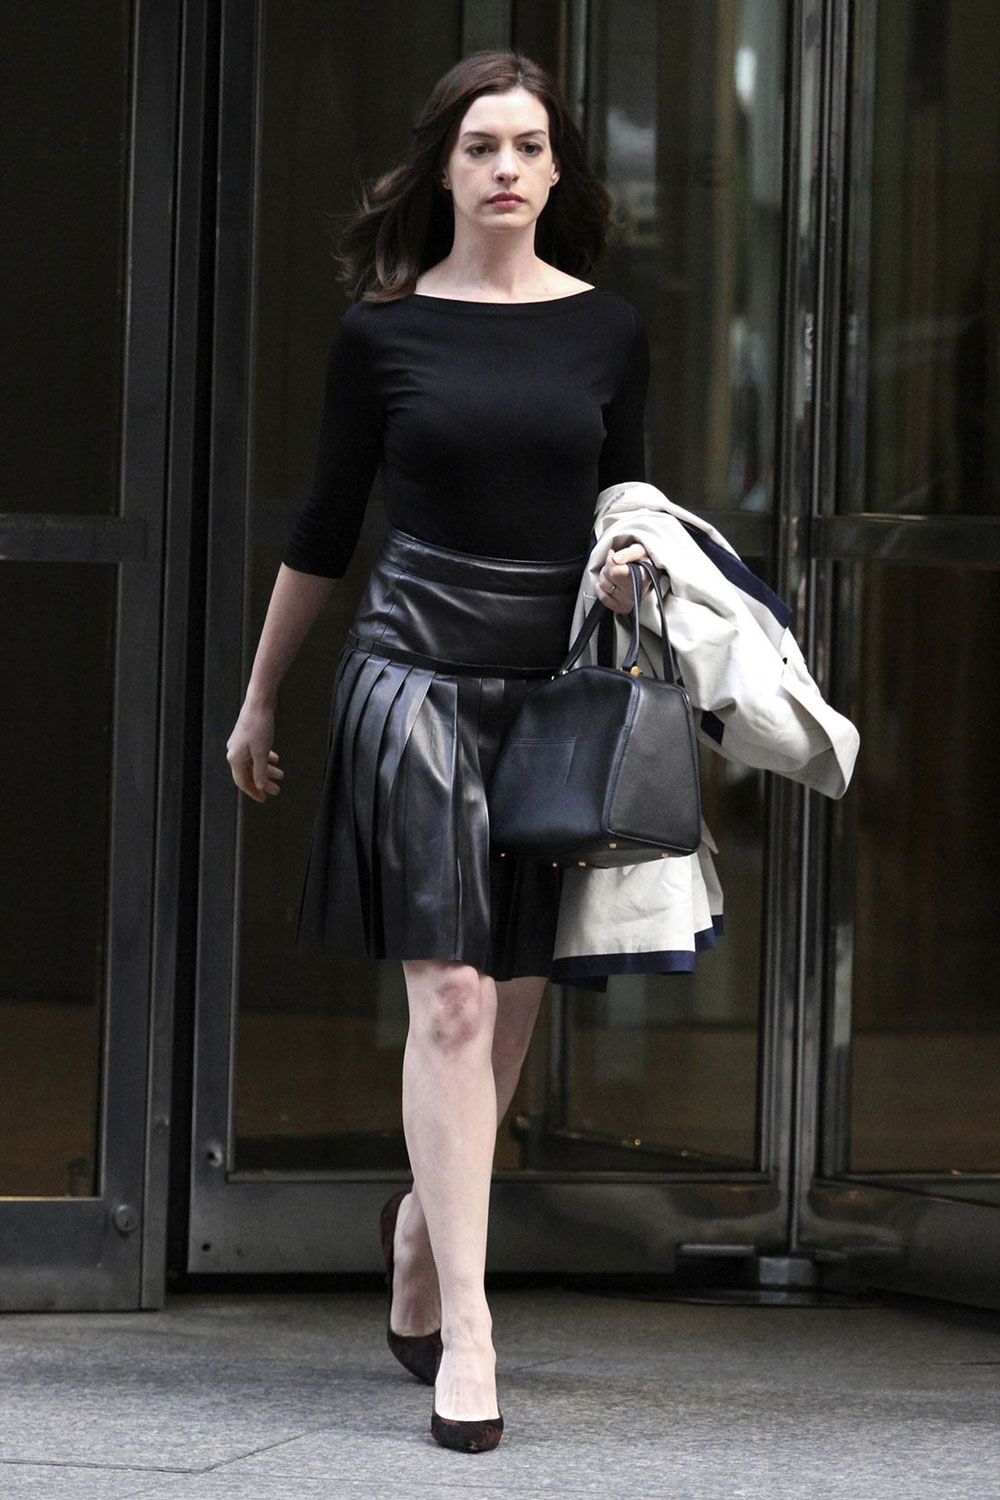 Anne Hathaway on the set of The Intern